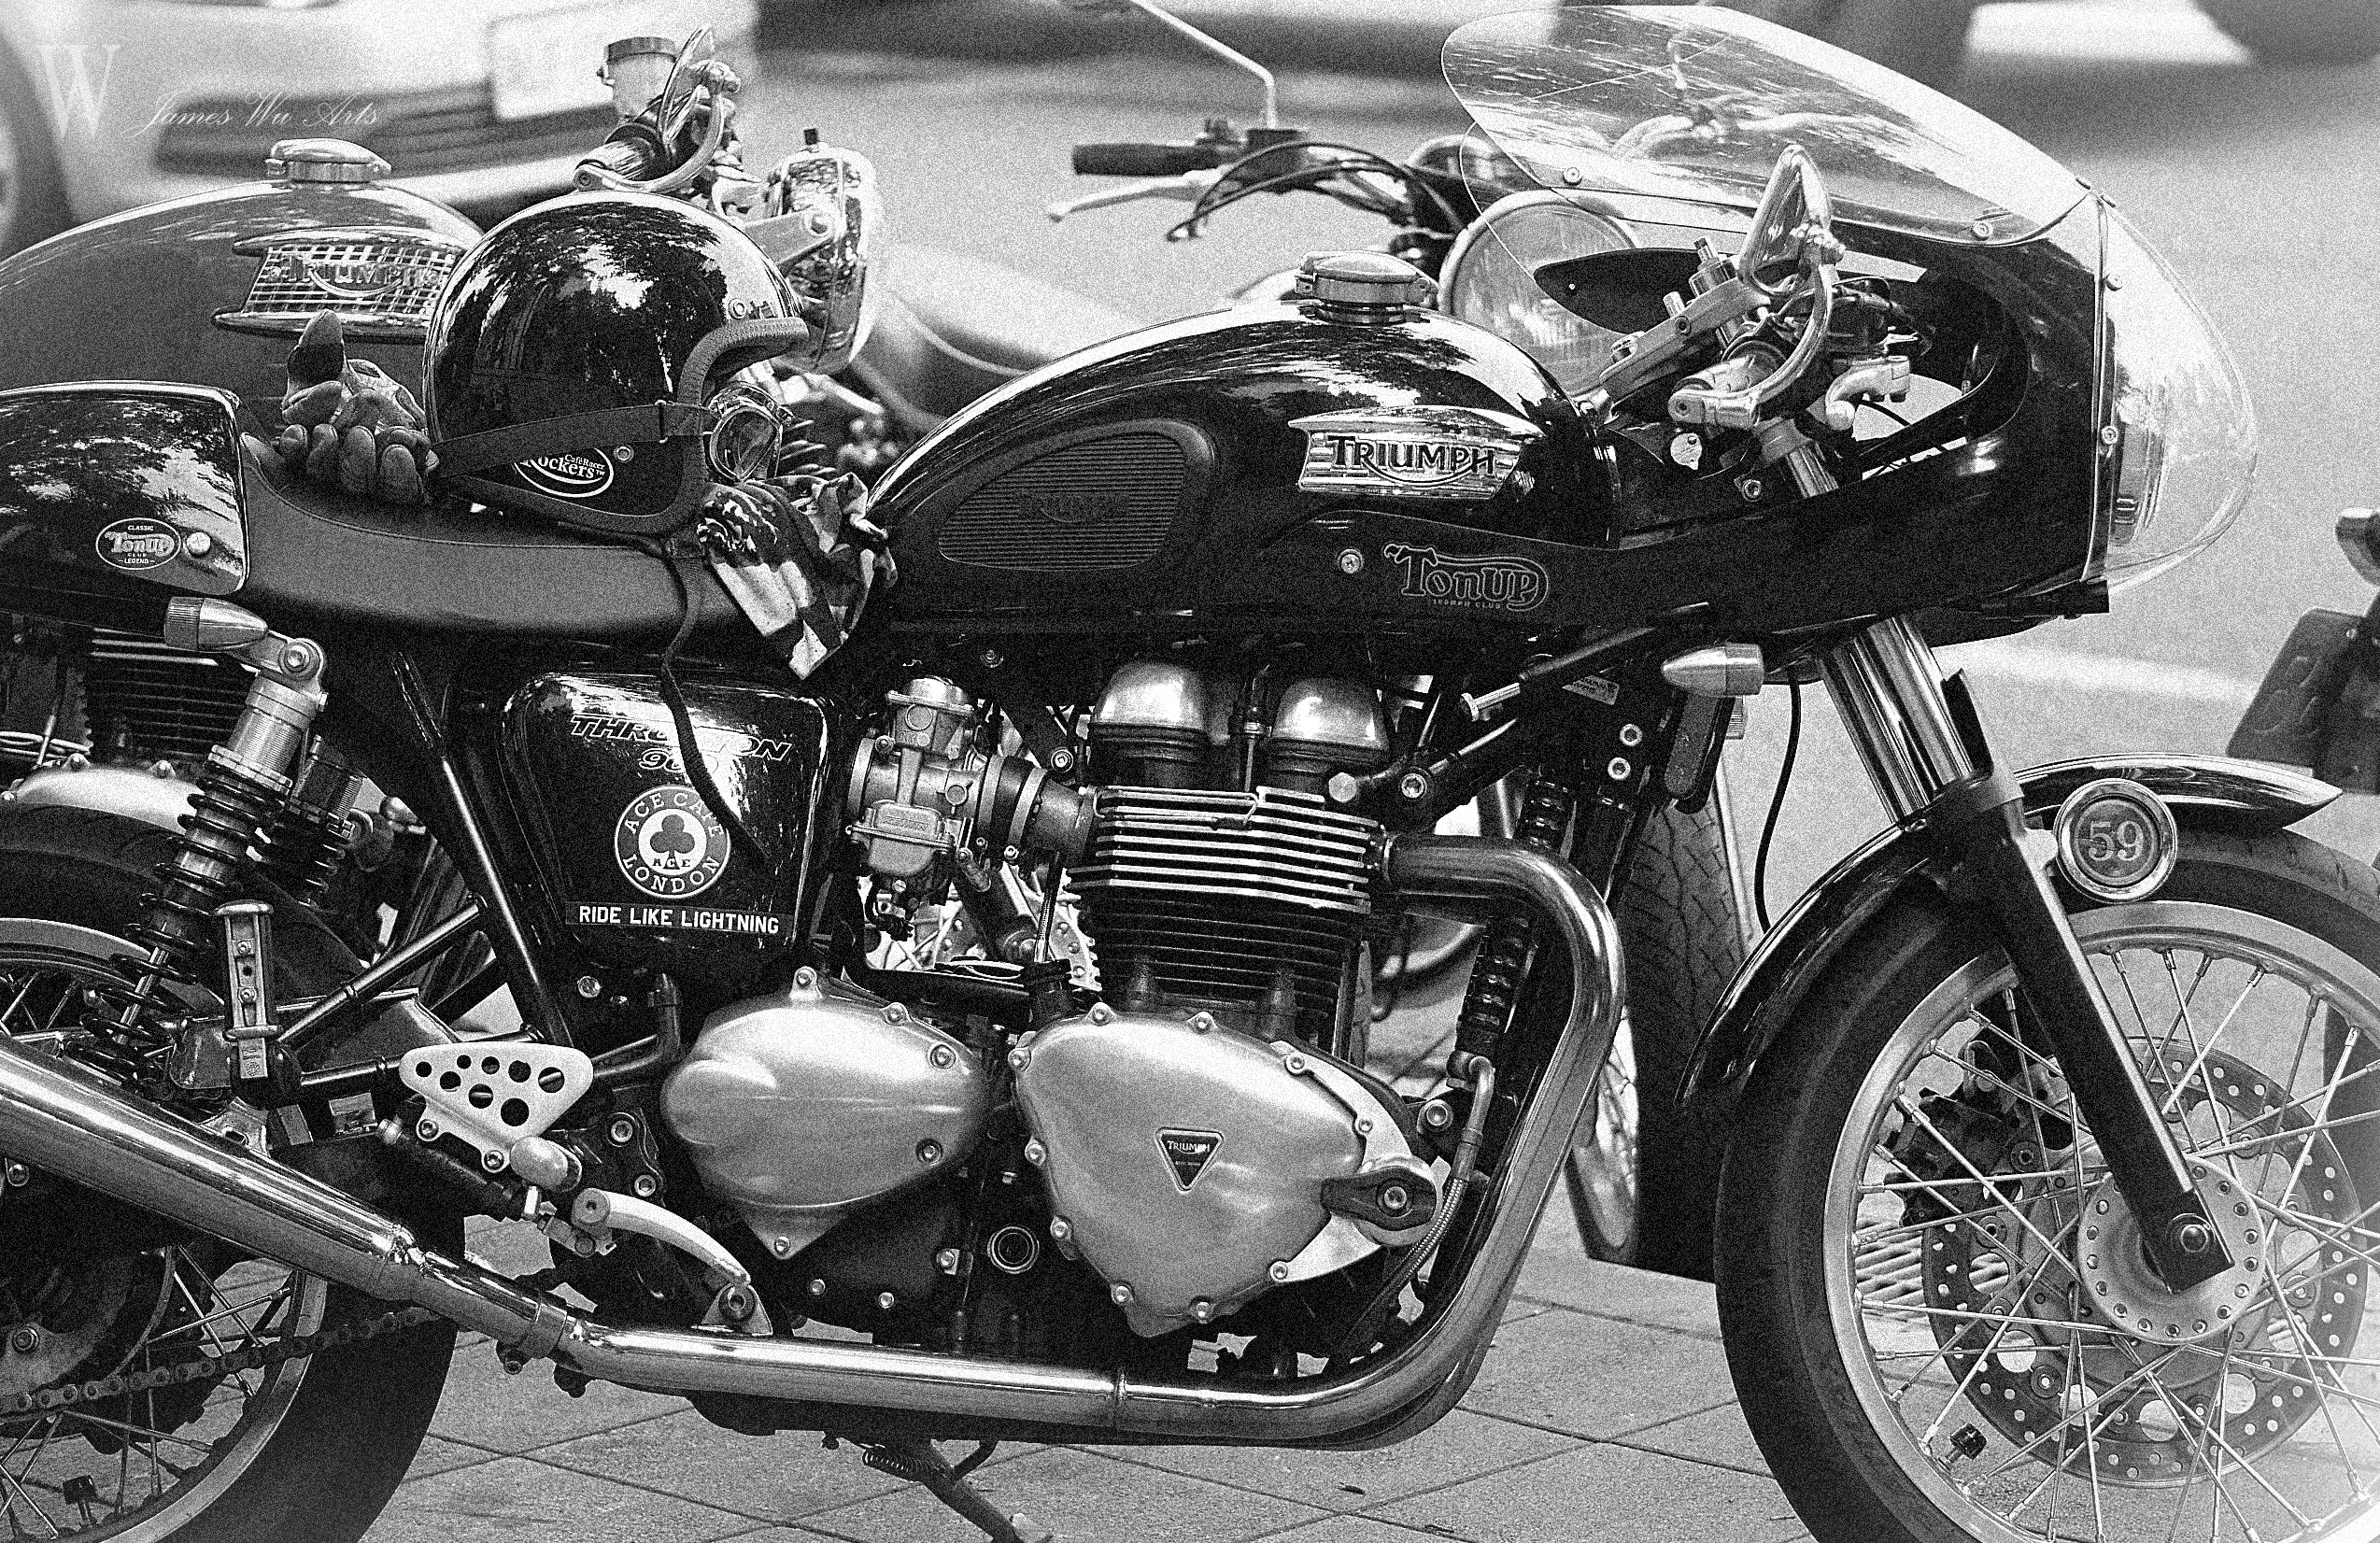 TONUP ROCKERS CAFE RACER (2)